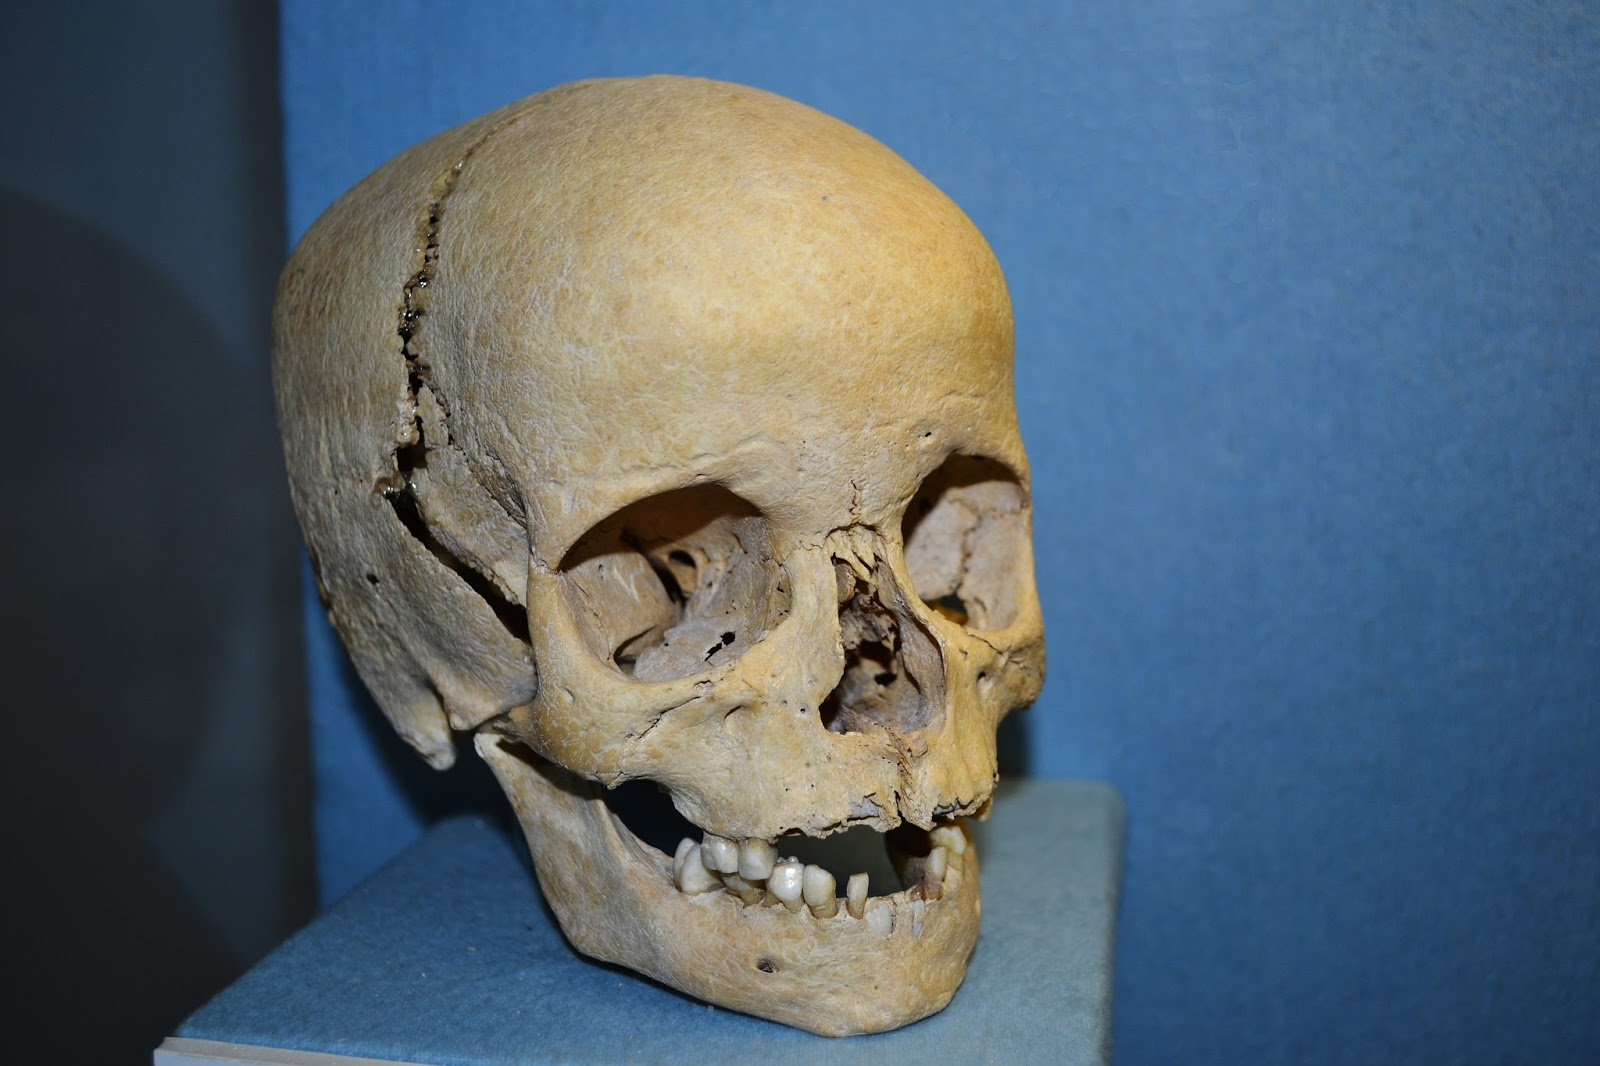 Anthroplogy_-_human_skull_of_a_boy.jpg